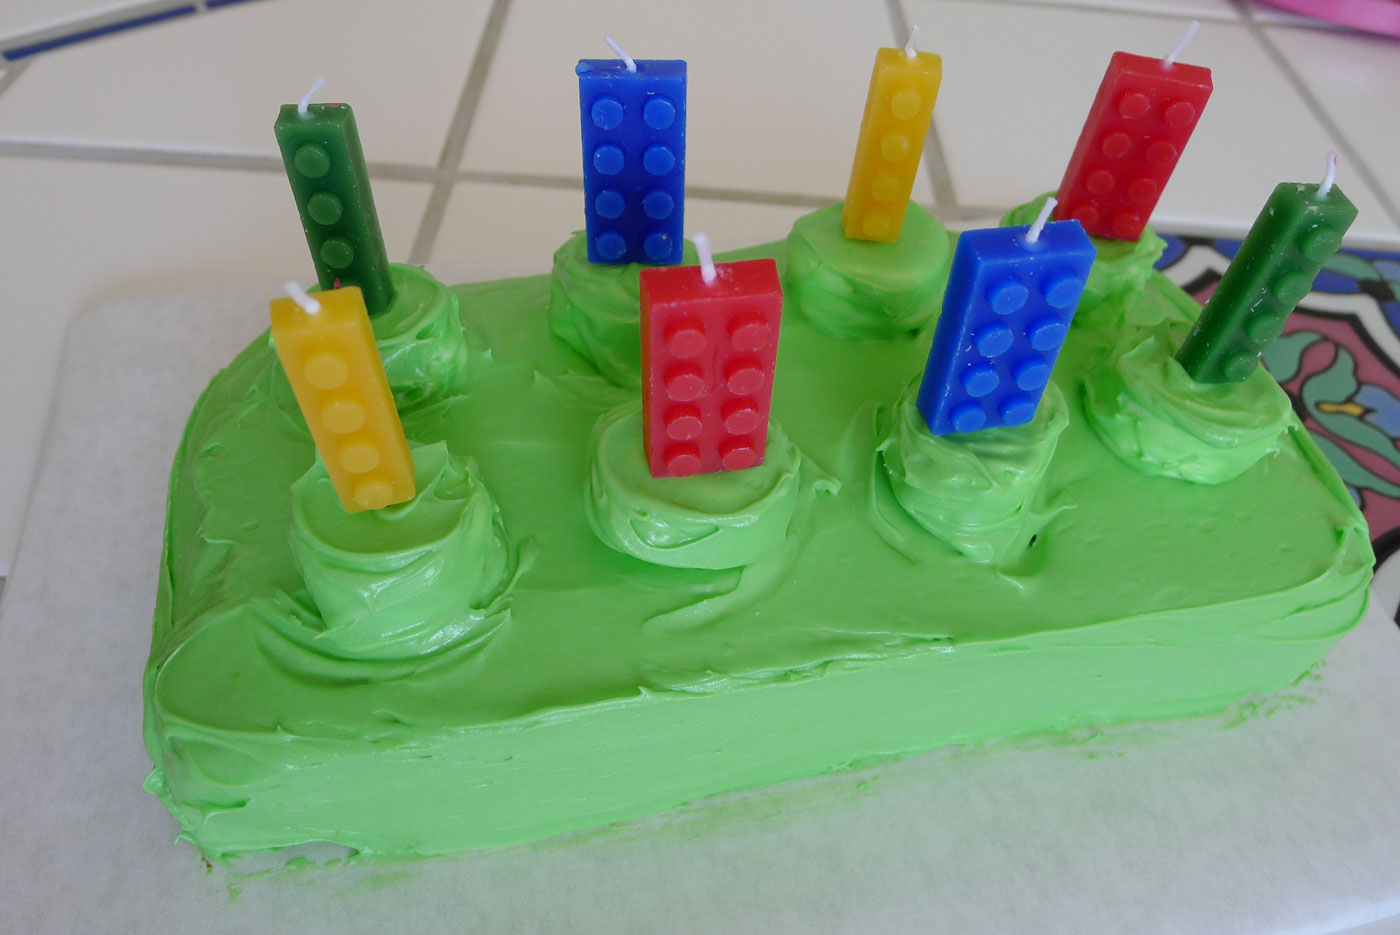 LEGO candles are added to LEGO cake